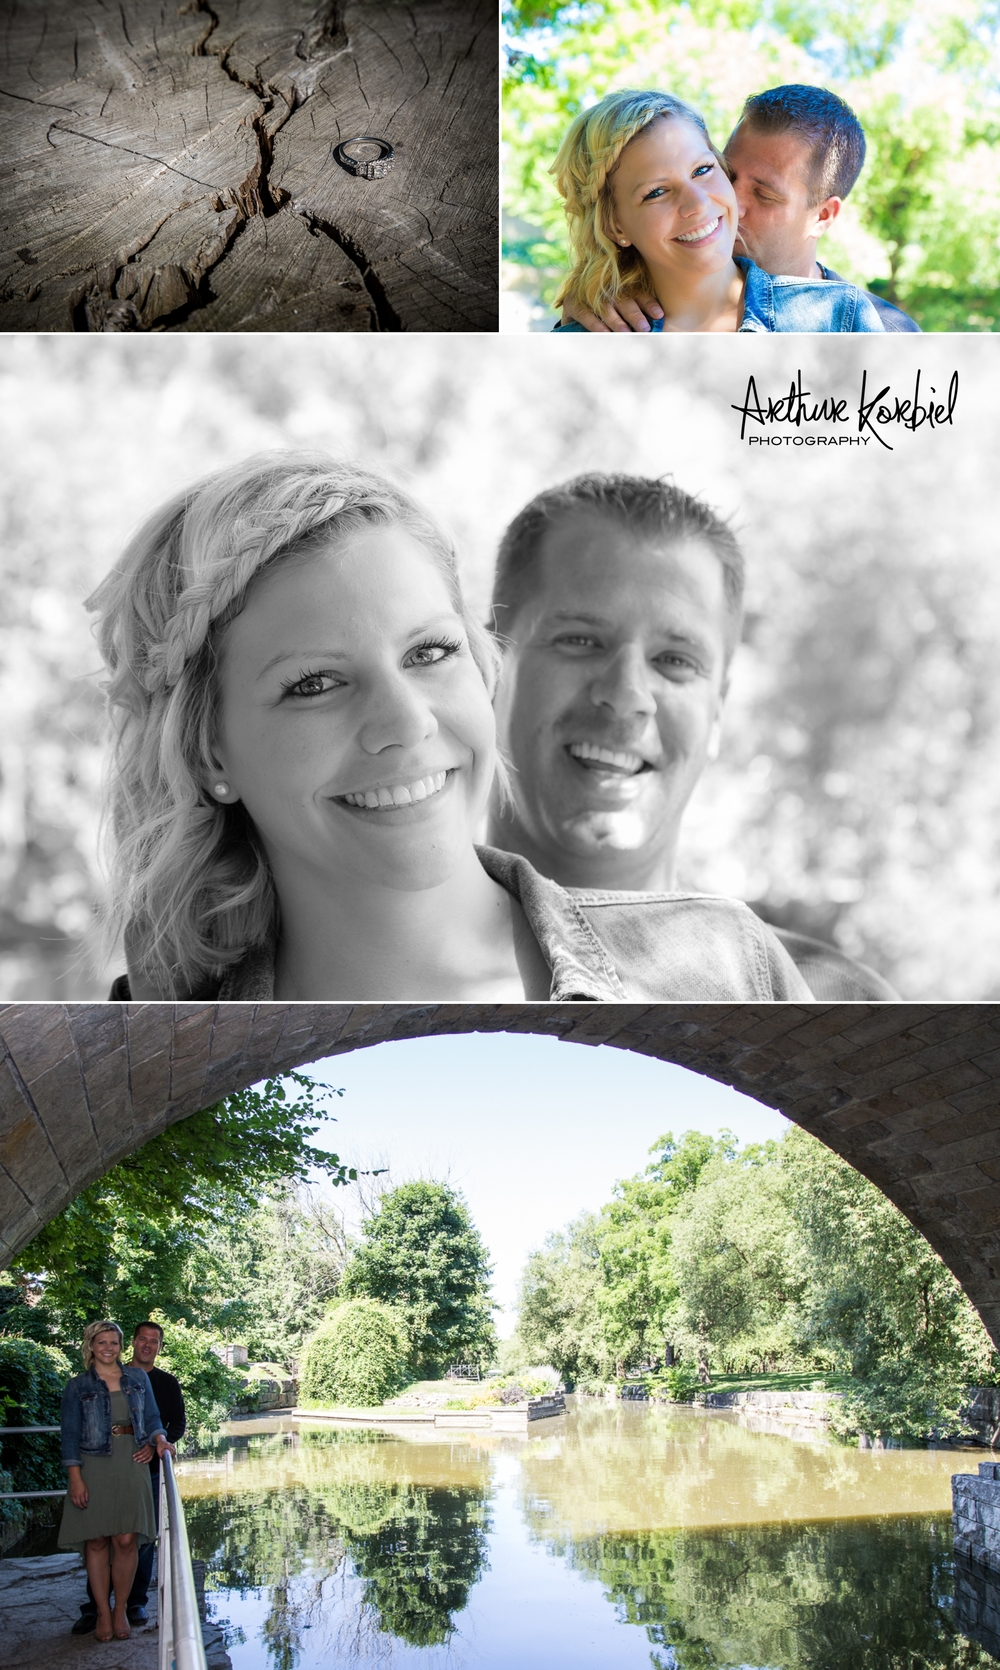 Arthur Korbiel Photography - London Engagement Photographer - Laura & Rick_006.jpg